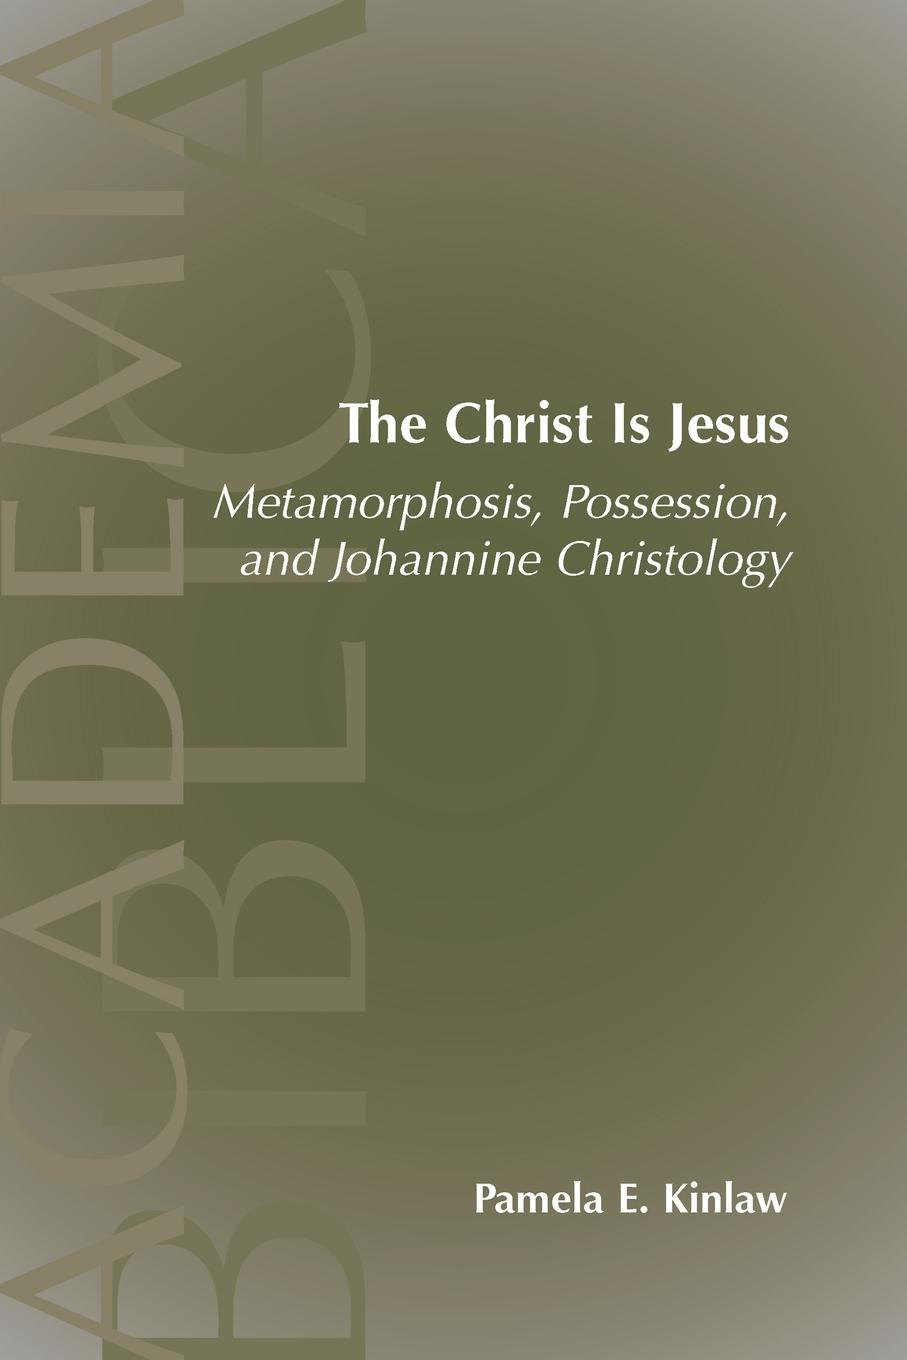 Pamela E. Kinlaw The Christ Is Jesus. Metamorphosis, Possessions, and Johannnine Christology купить недорого в Москве